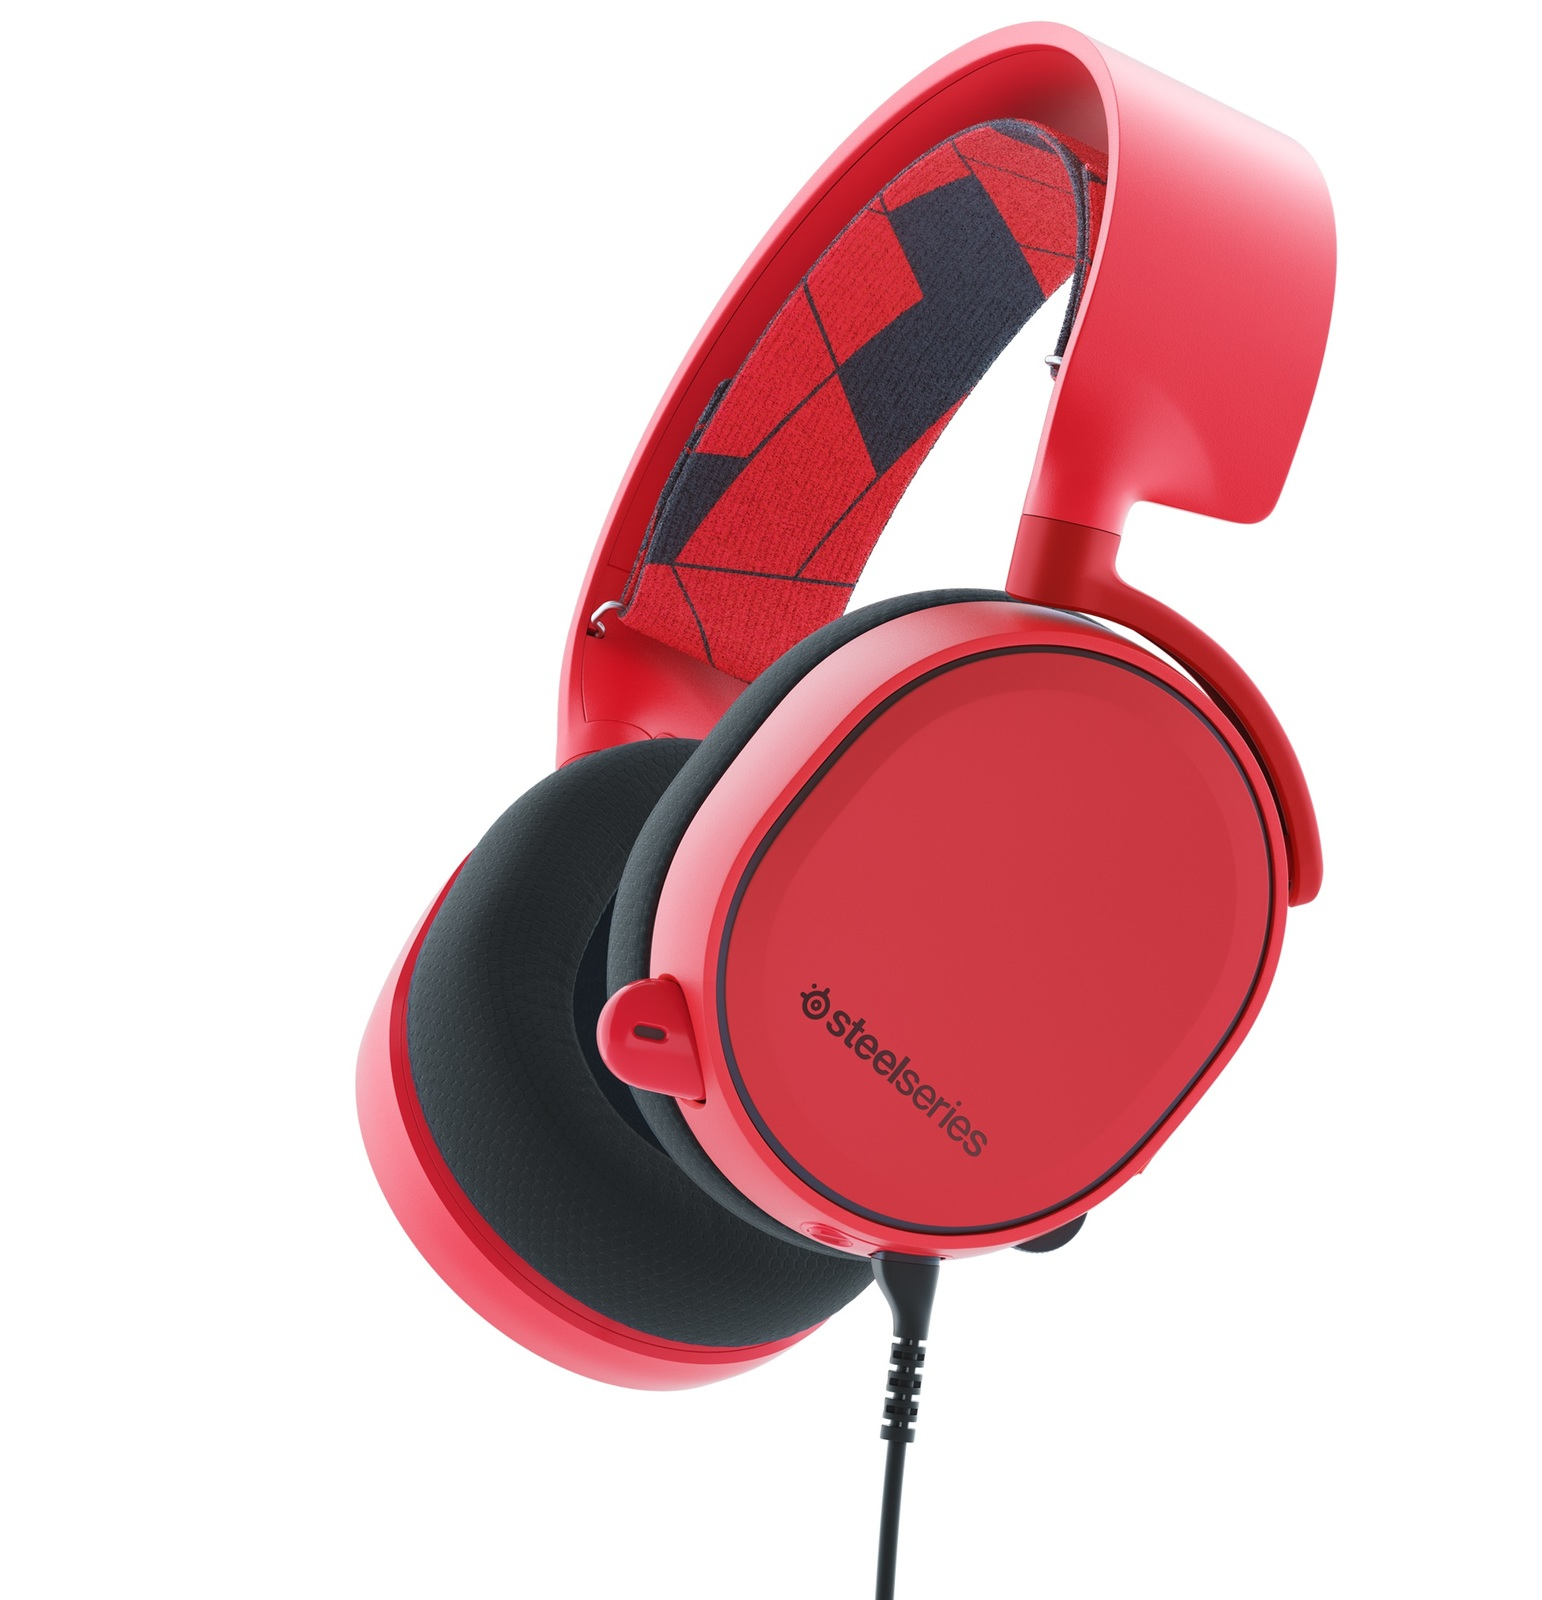 SteelSeries Arctis 3 Wired Gaming Headset (Solar Red) for PC Games image